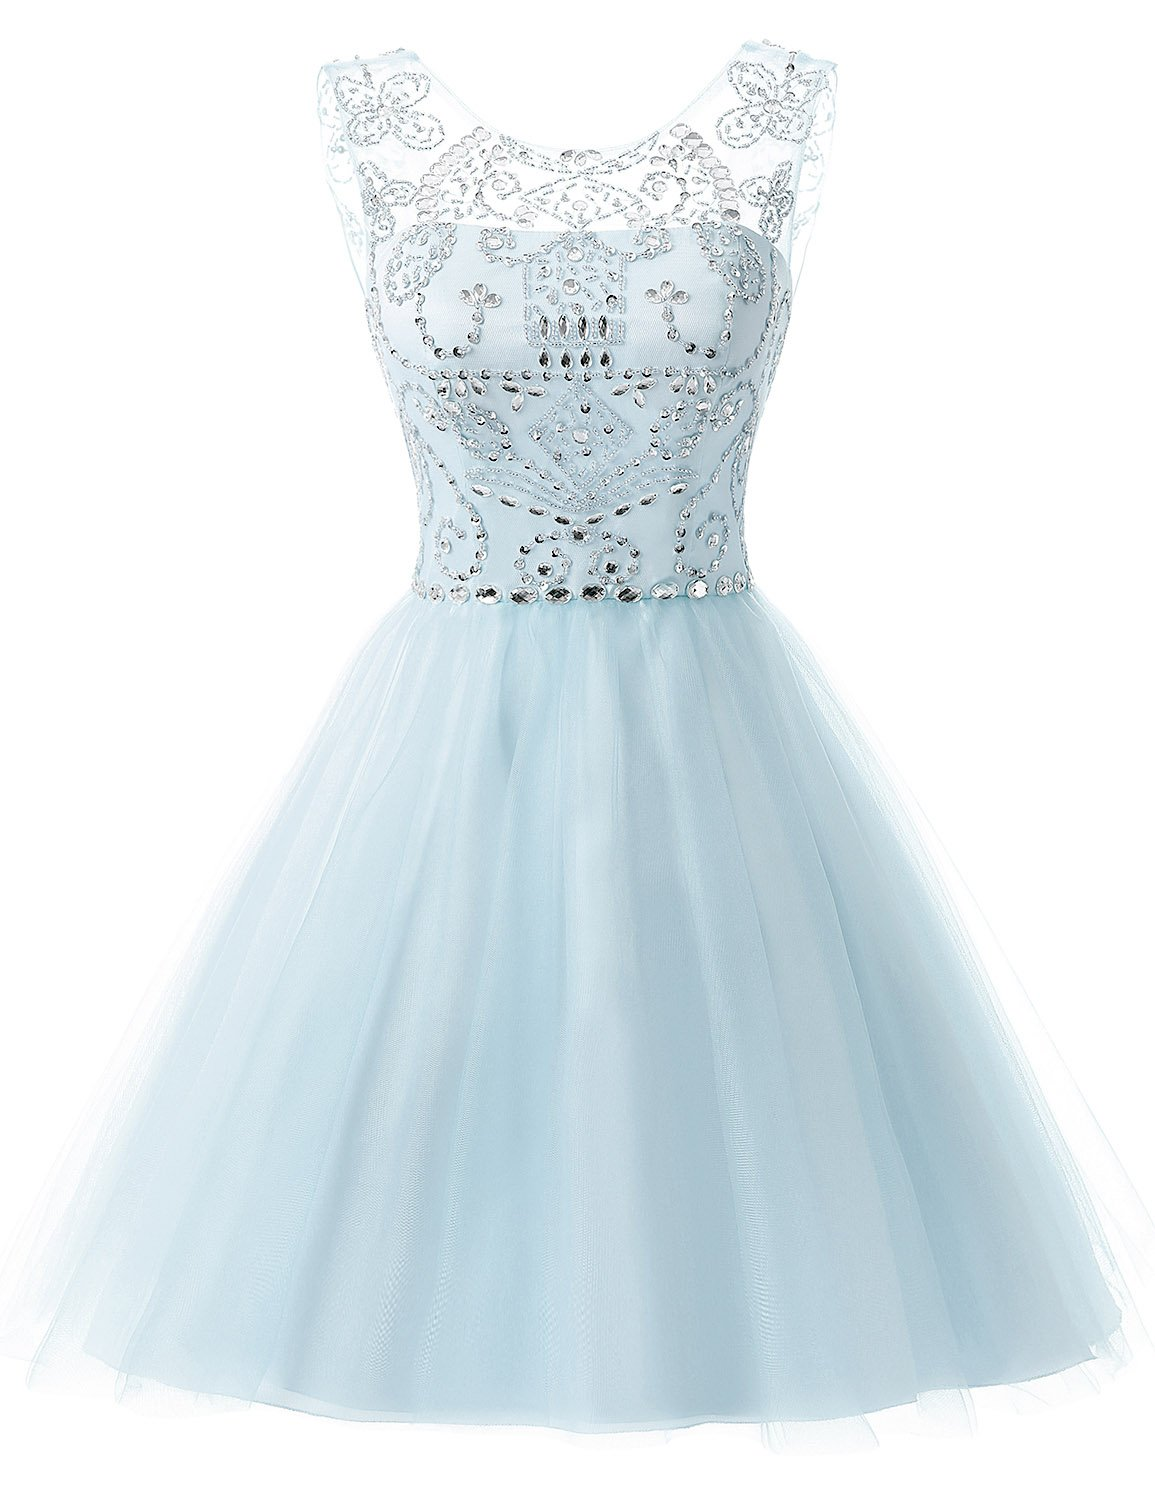 Sarahbridal Women's Short Tulle Prom Party Dresses Beading Crystal Homecoming Gowns Light Blue US4